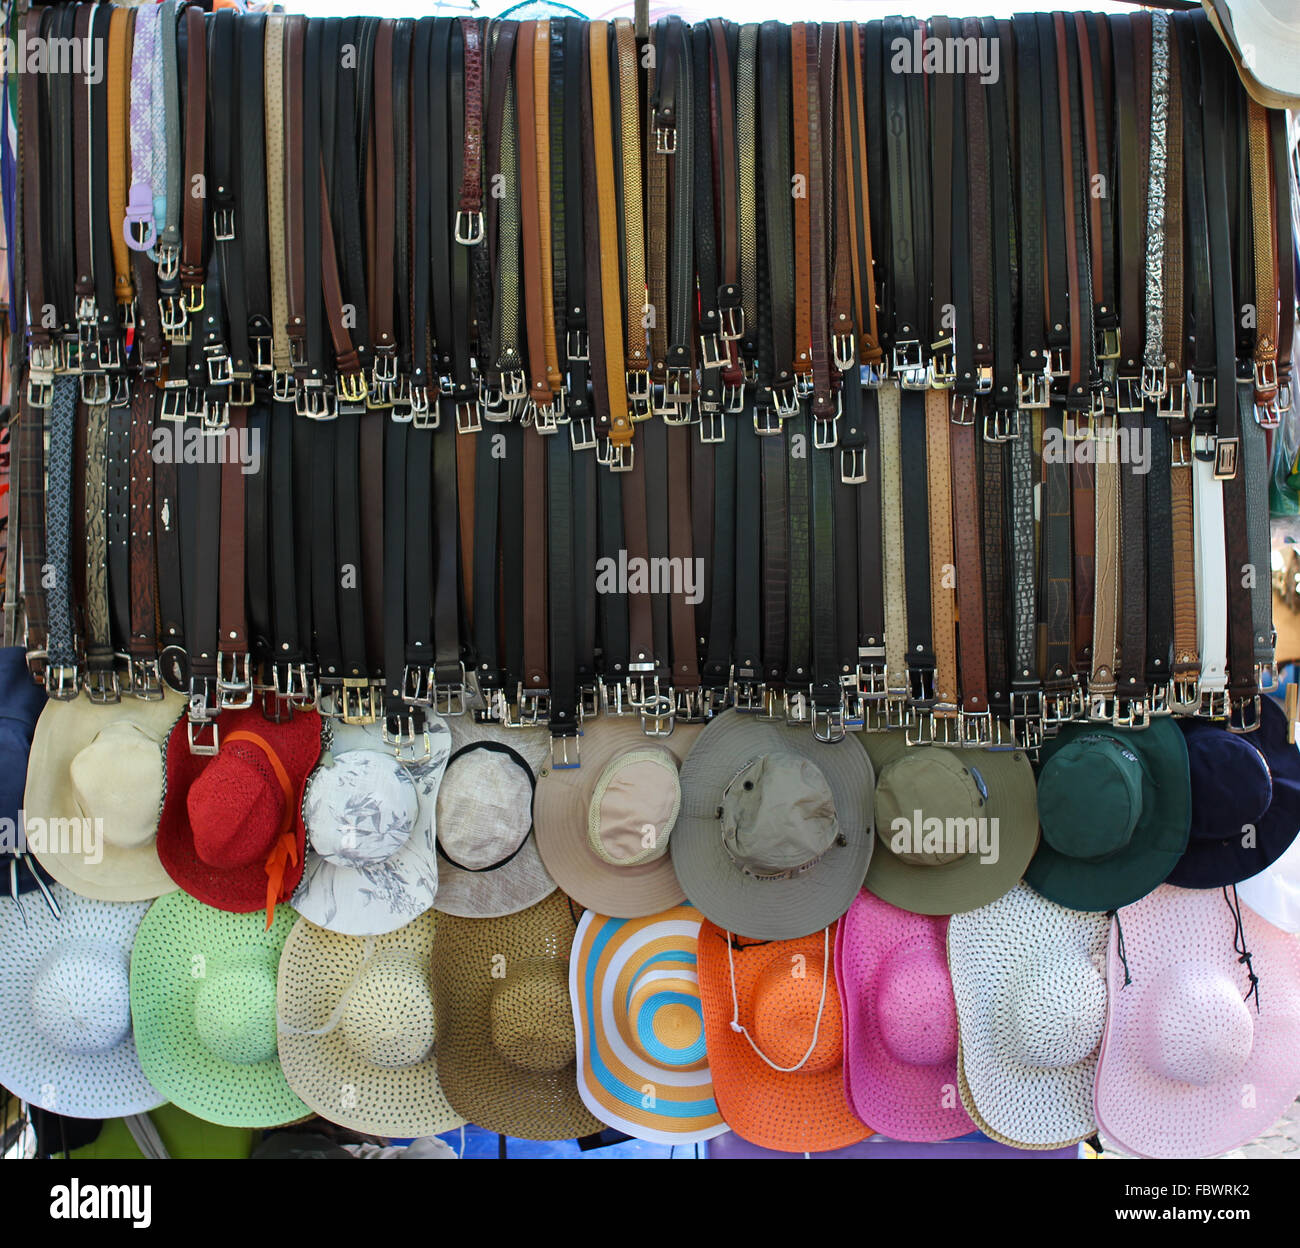 Belts and hats for sale - Stock Image